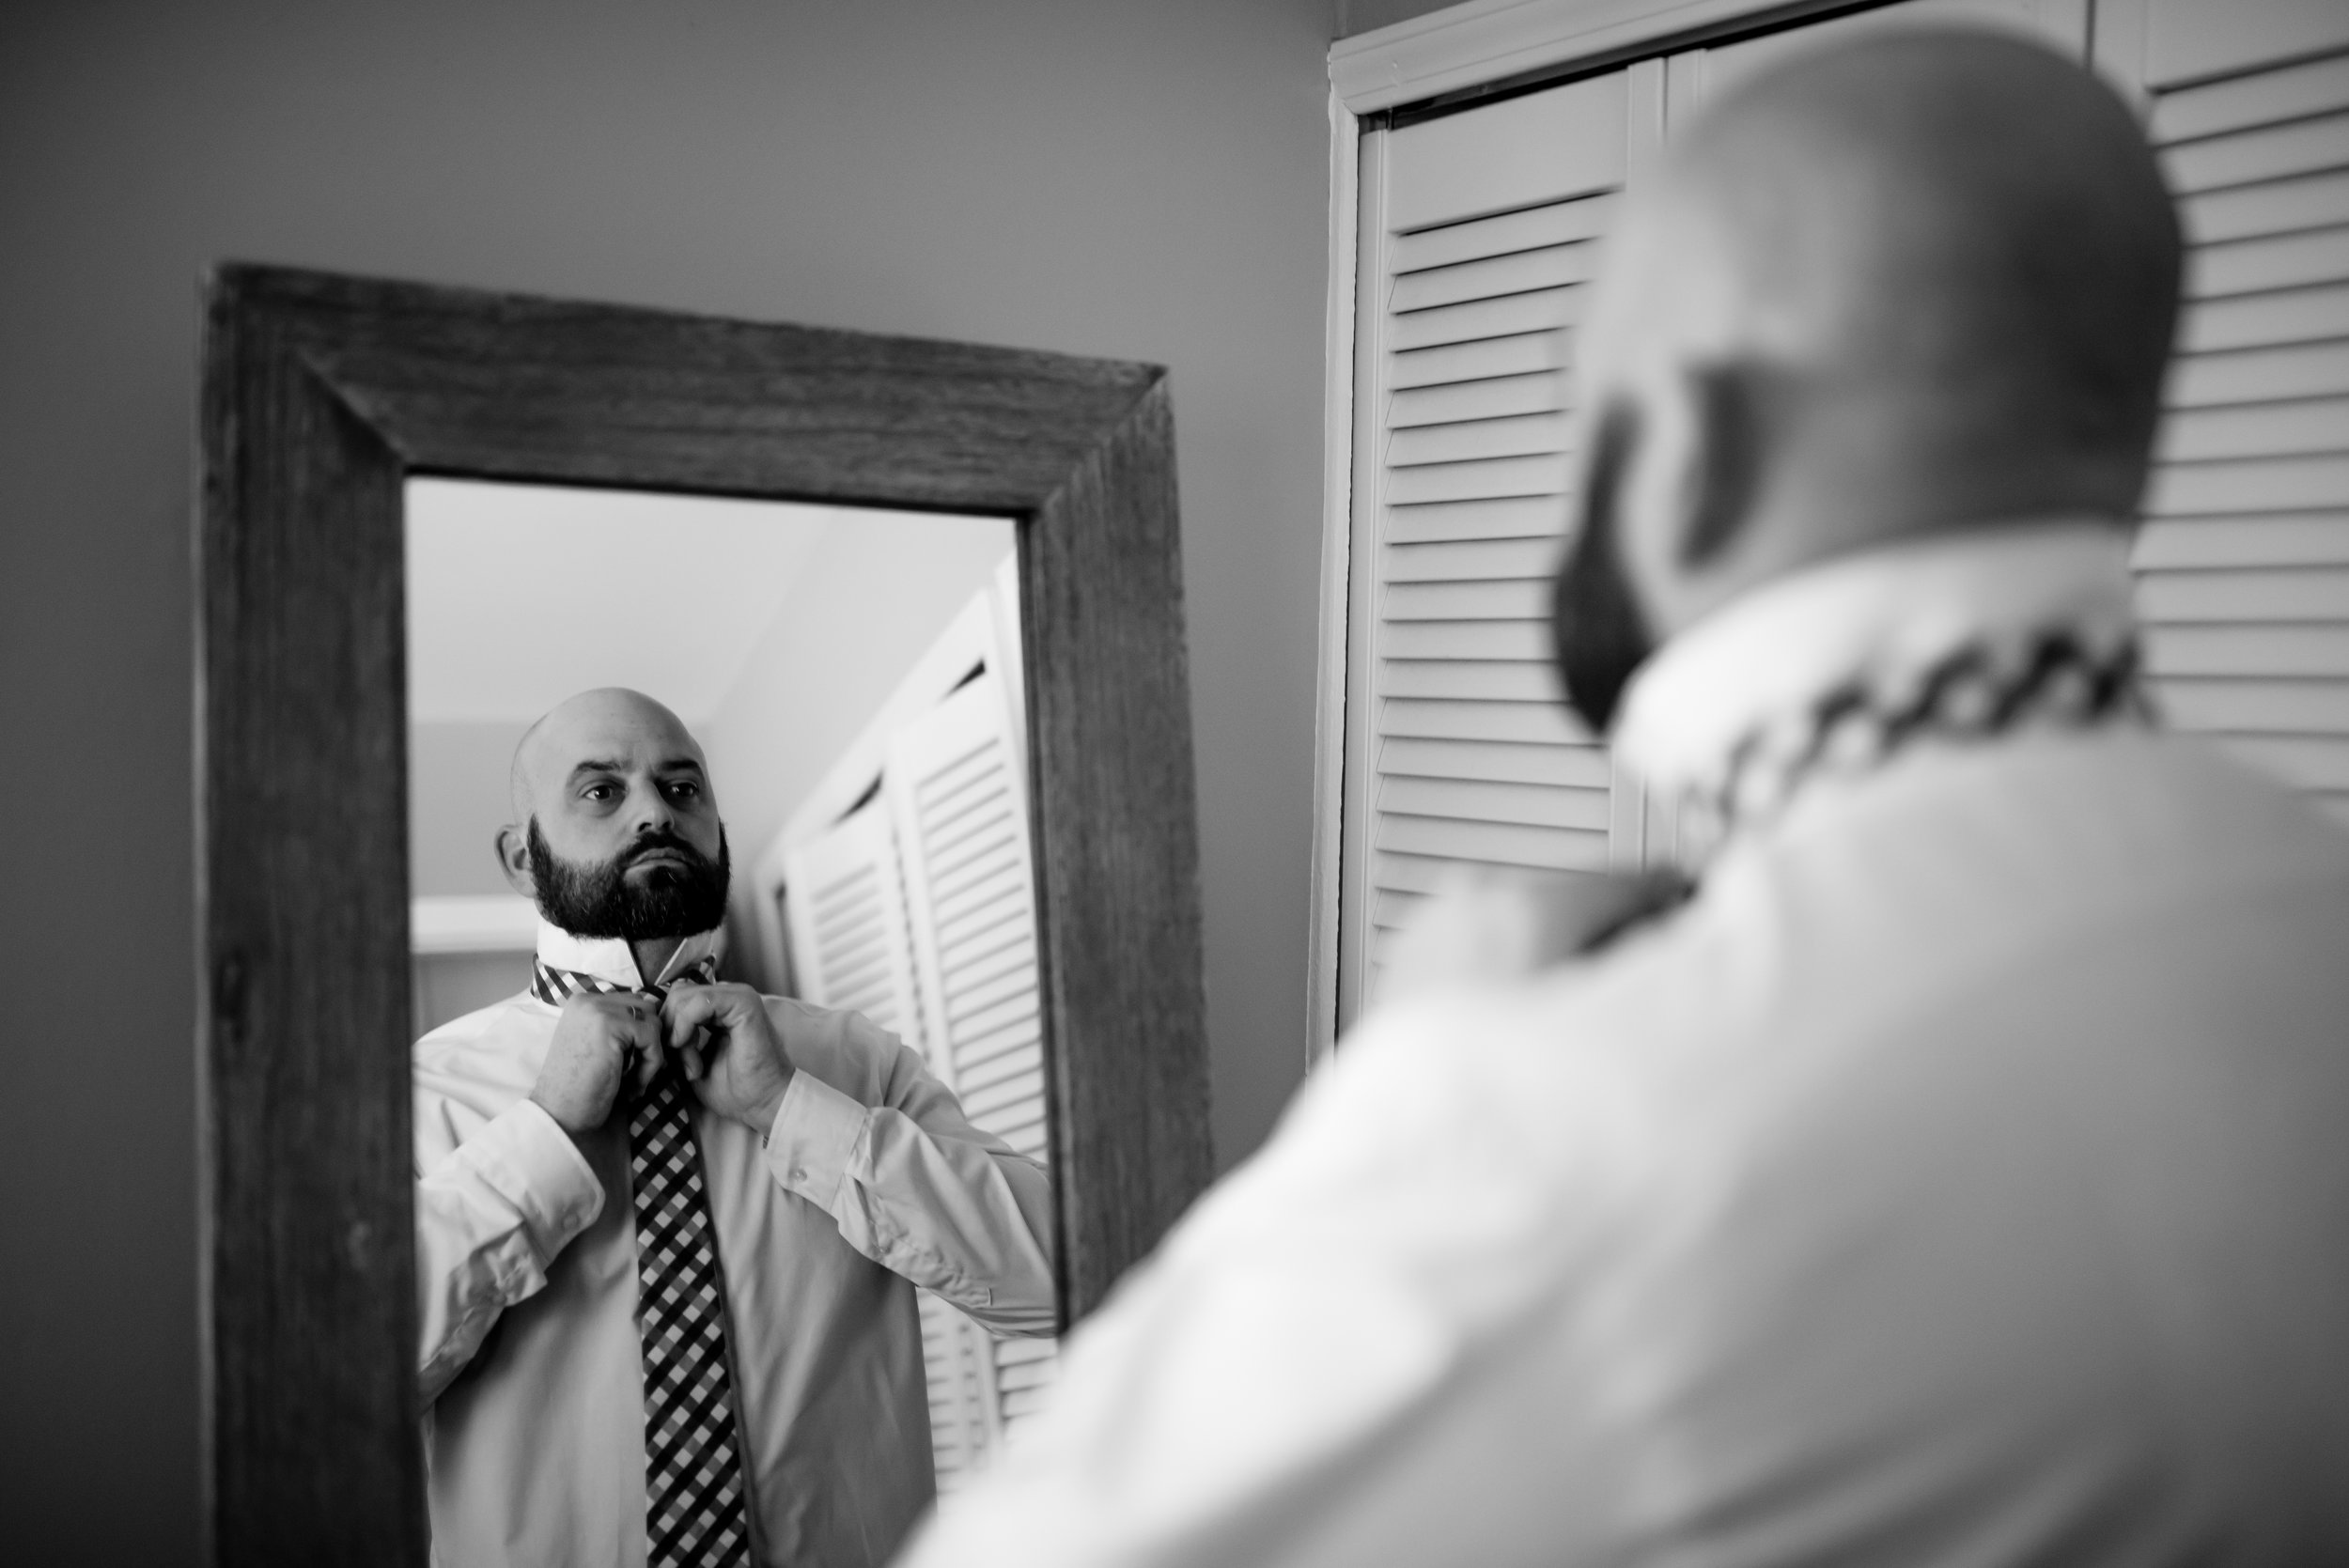 Man ties tie in mirror